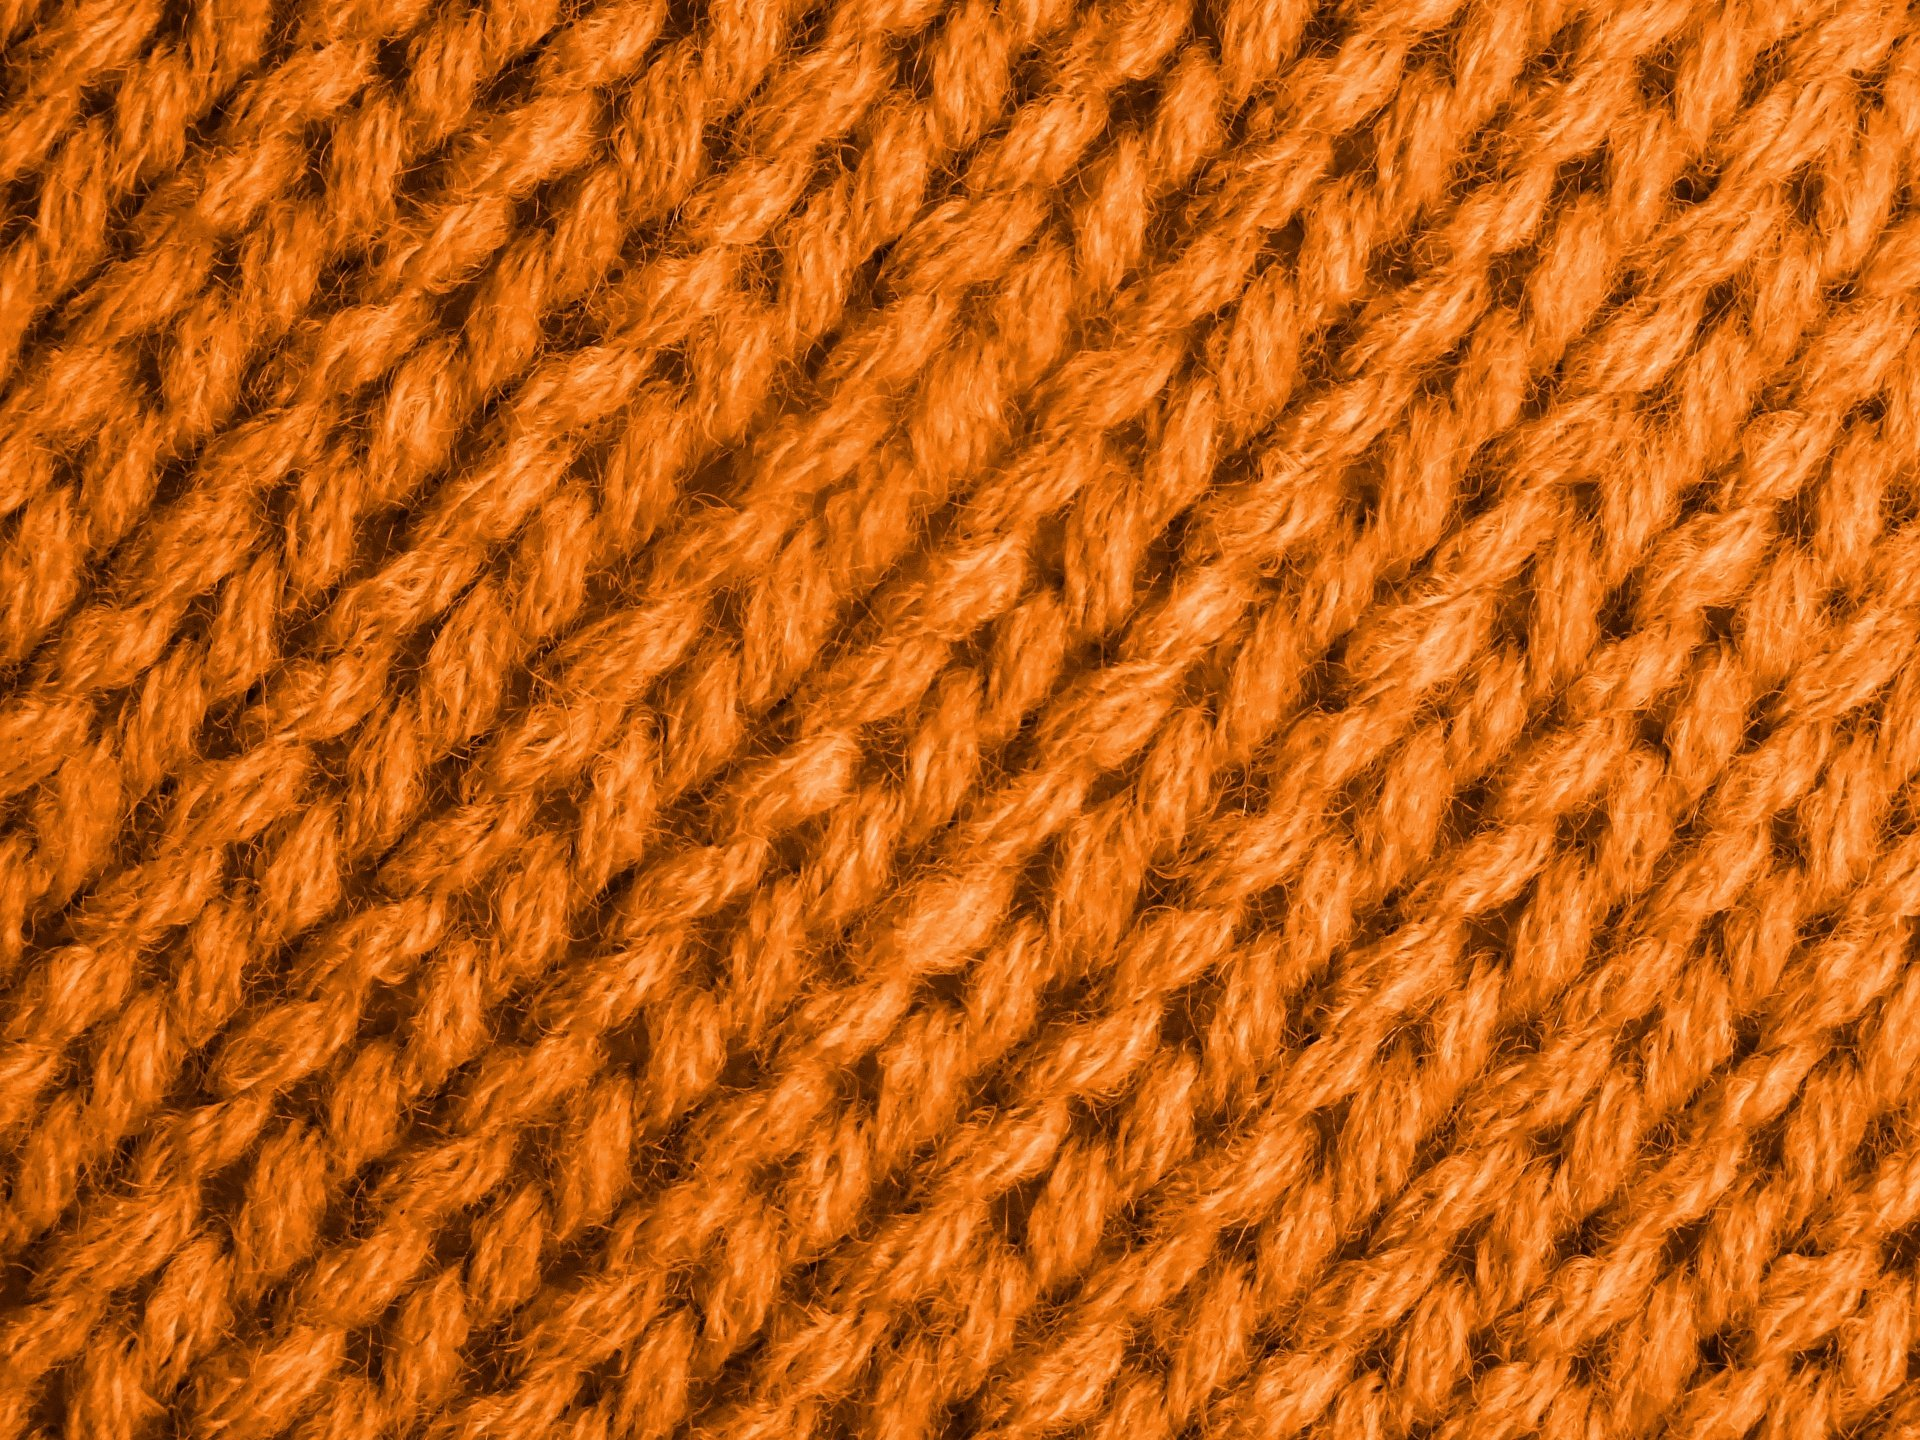 A field of perfect knit stitches in orange yarn